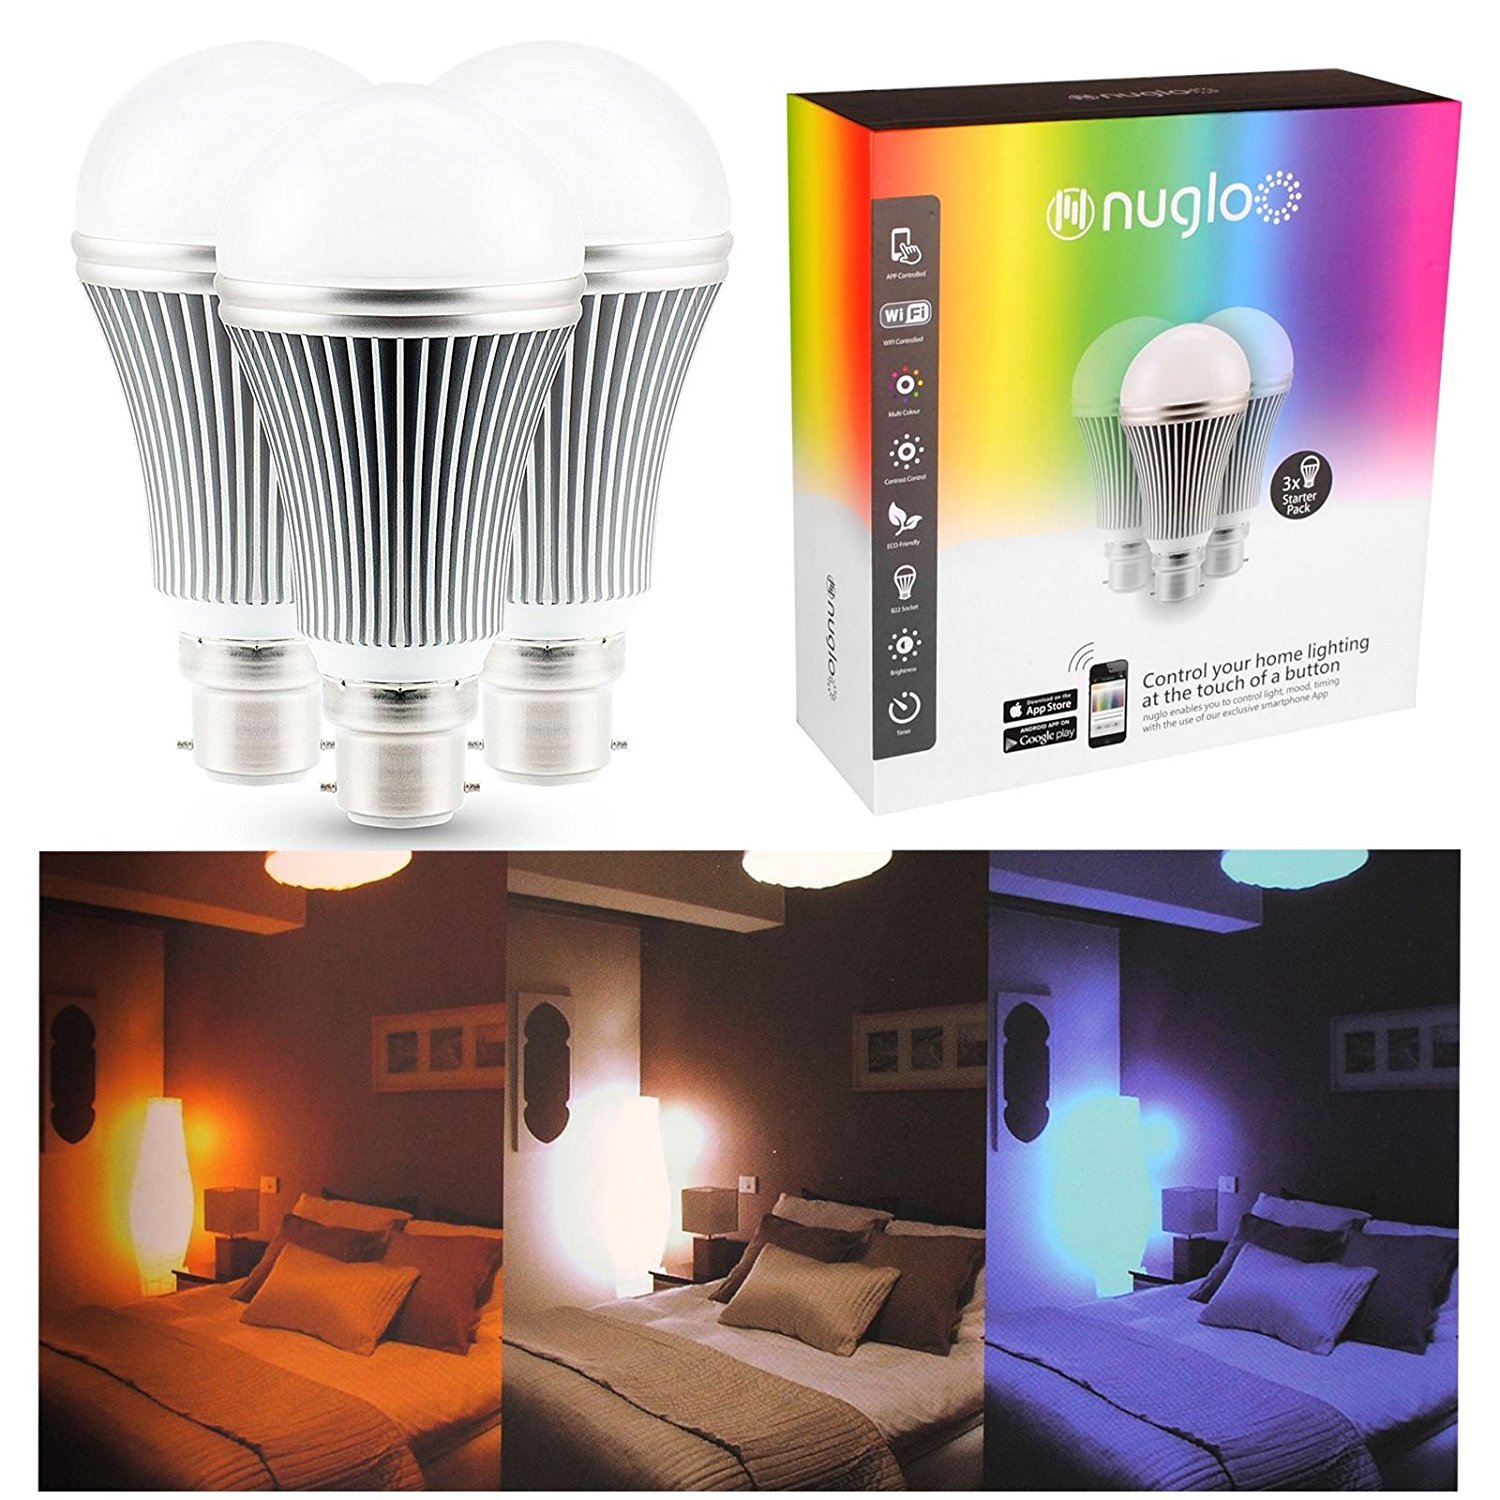 47a68c48d49b NUGLO 3 PACK COLOUR CHANGING LED APP OPERATED BULB. STARTER PACK WITH  WIRELESS ROUTER [Energy Class A]